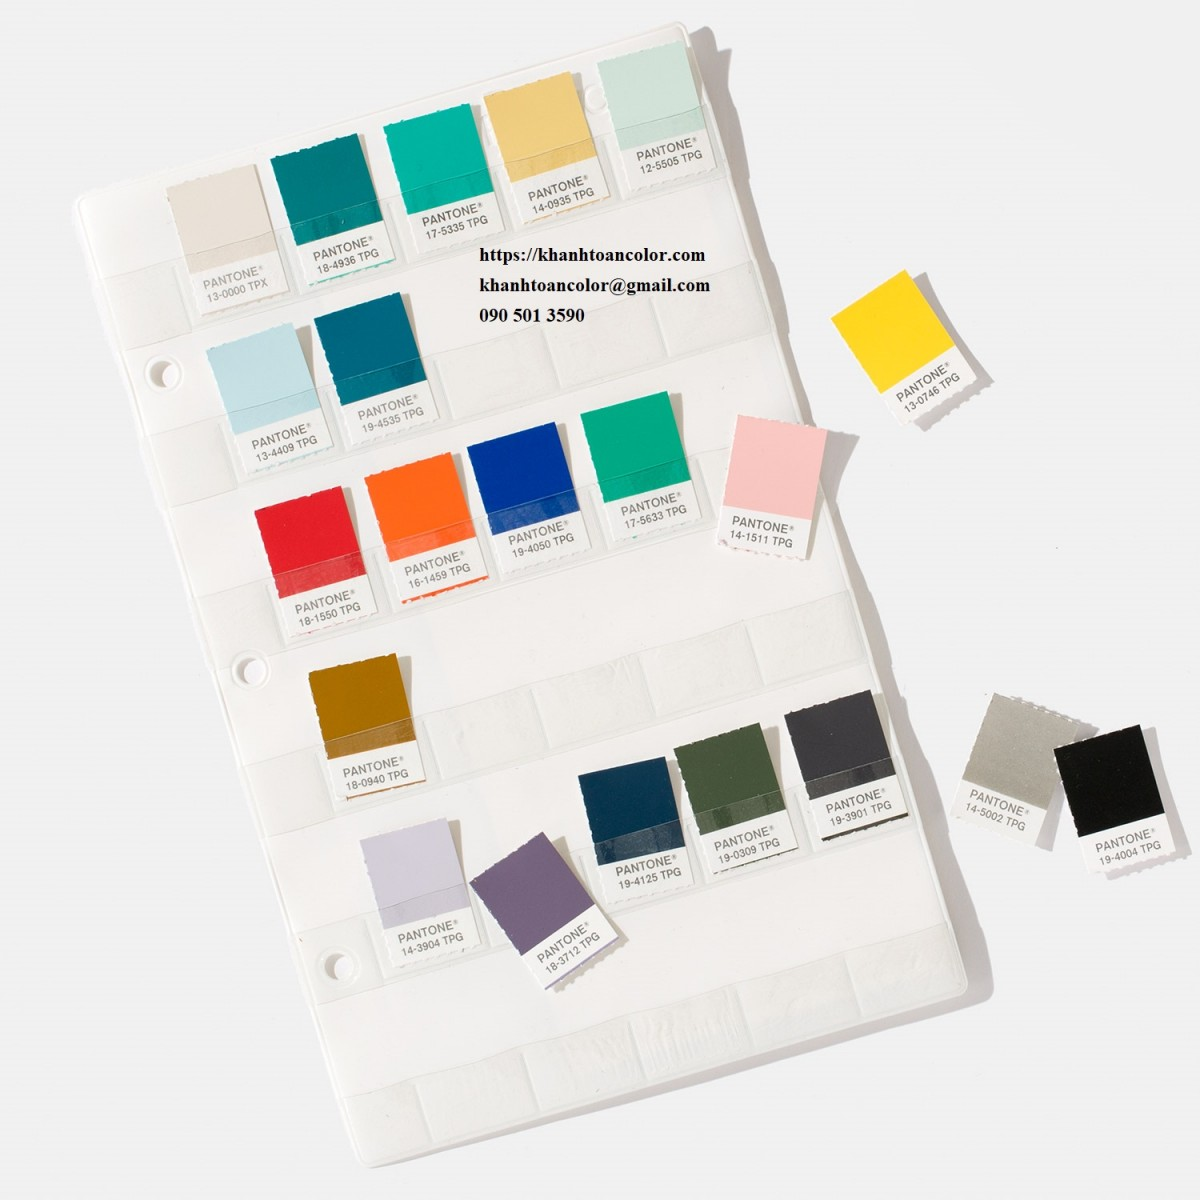 pantone mau moi nhat FHIP230-pantone-fashion-home-interiors-tpg-colors-on-paper-2-volume-binder-matching-guides-color-specifier-and-guide-set-index-product-4